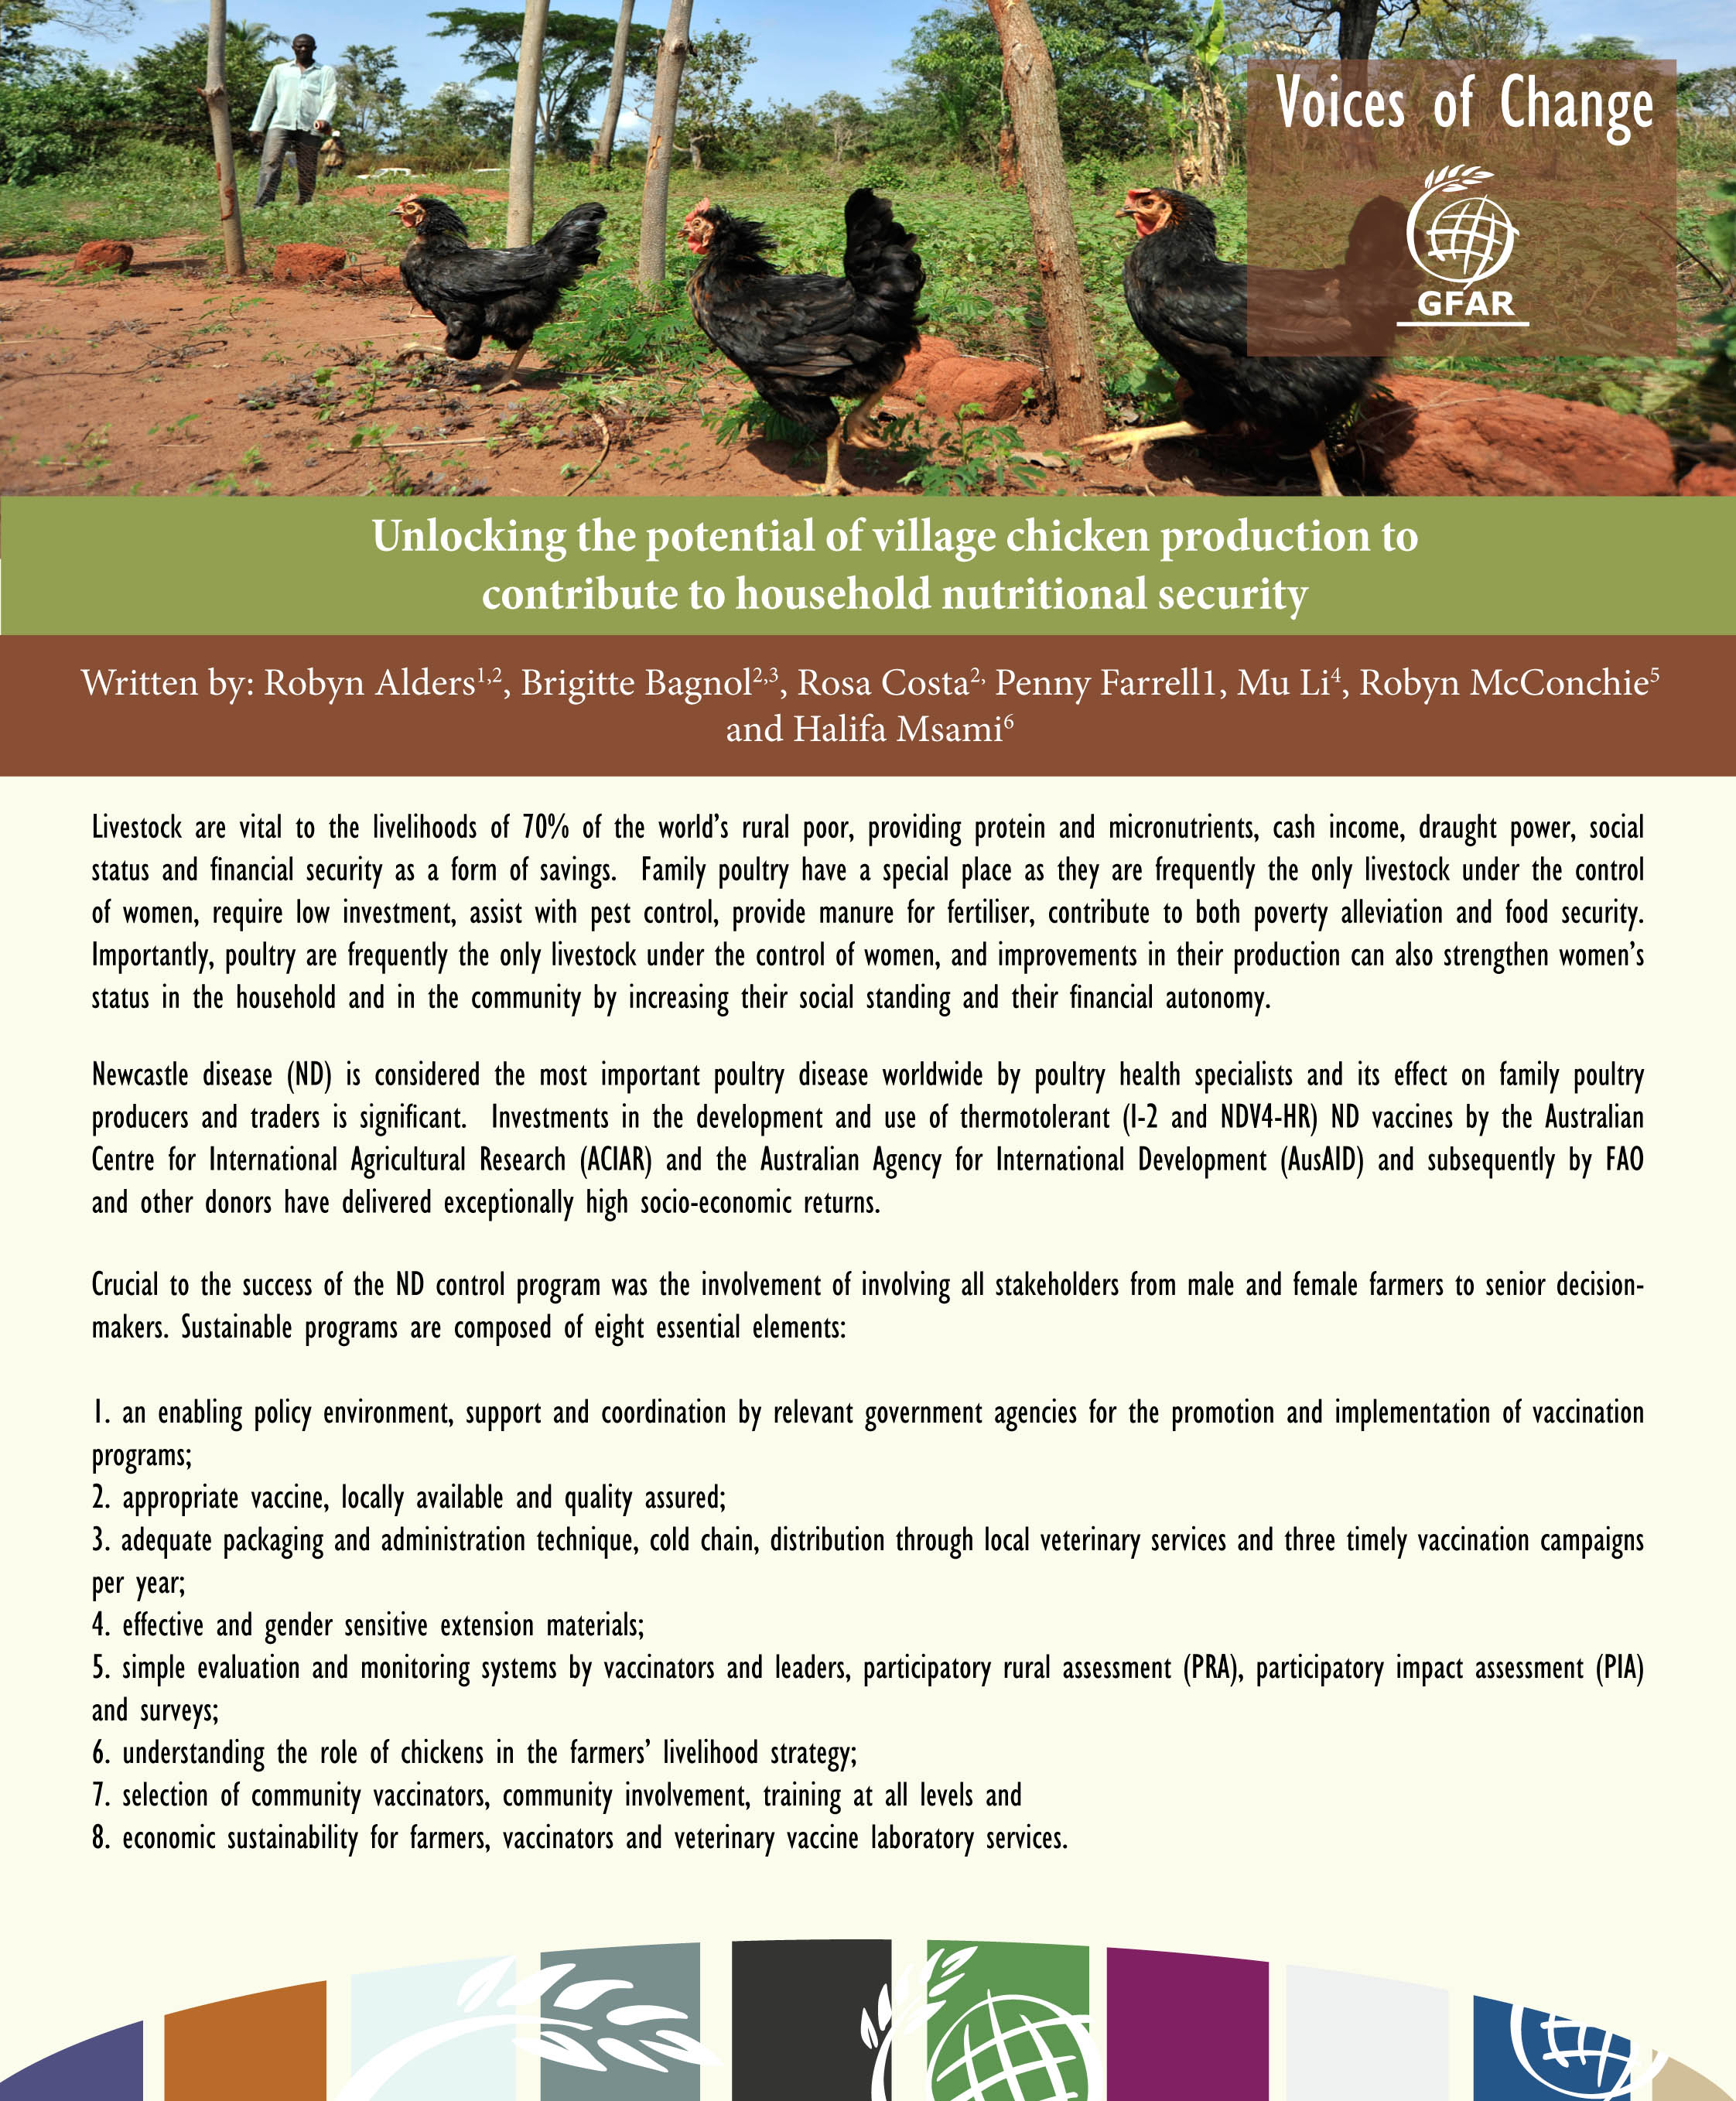 Unlocking the potential of village chicken production